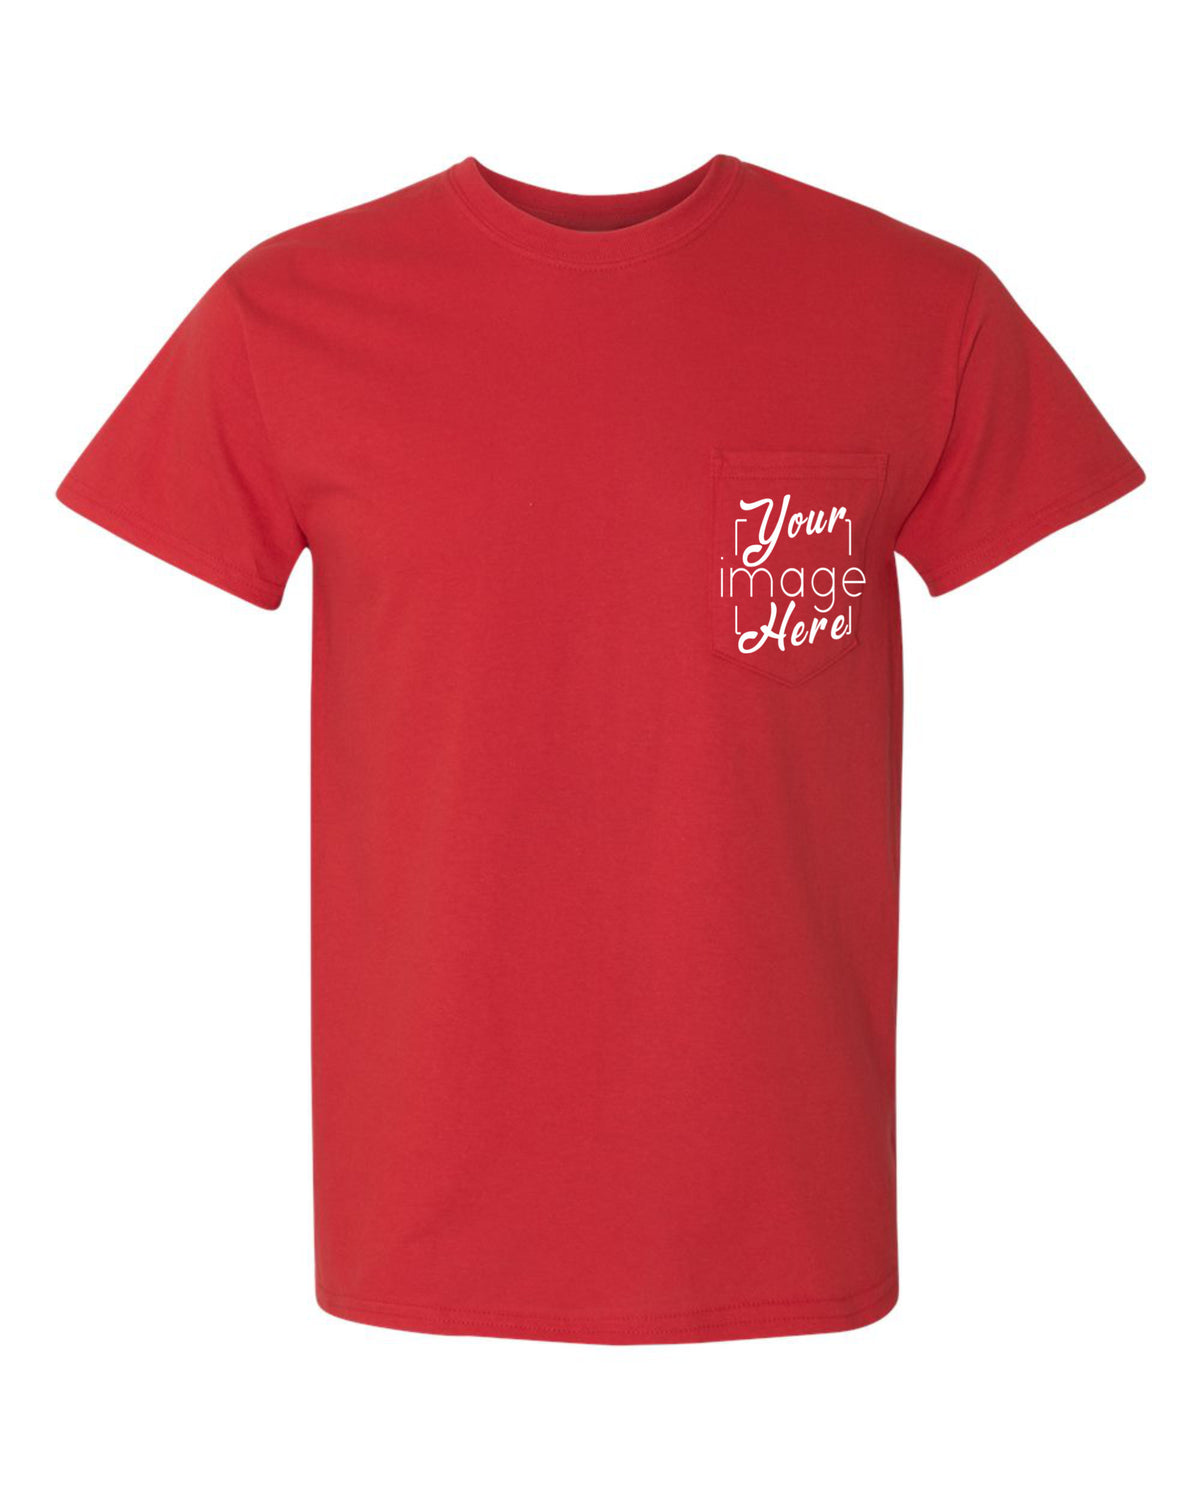 Front Image of a Pocket T-Shirt for Custom Printing